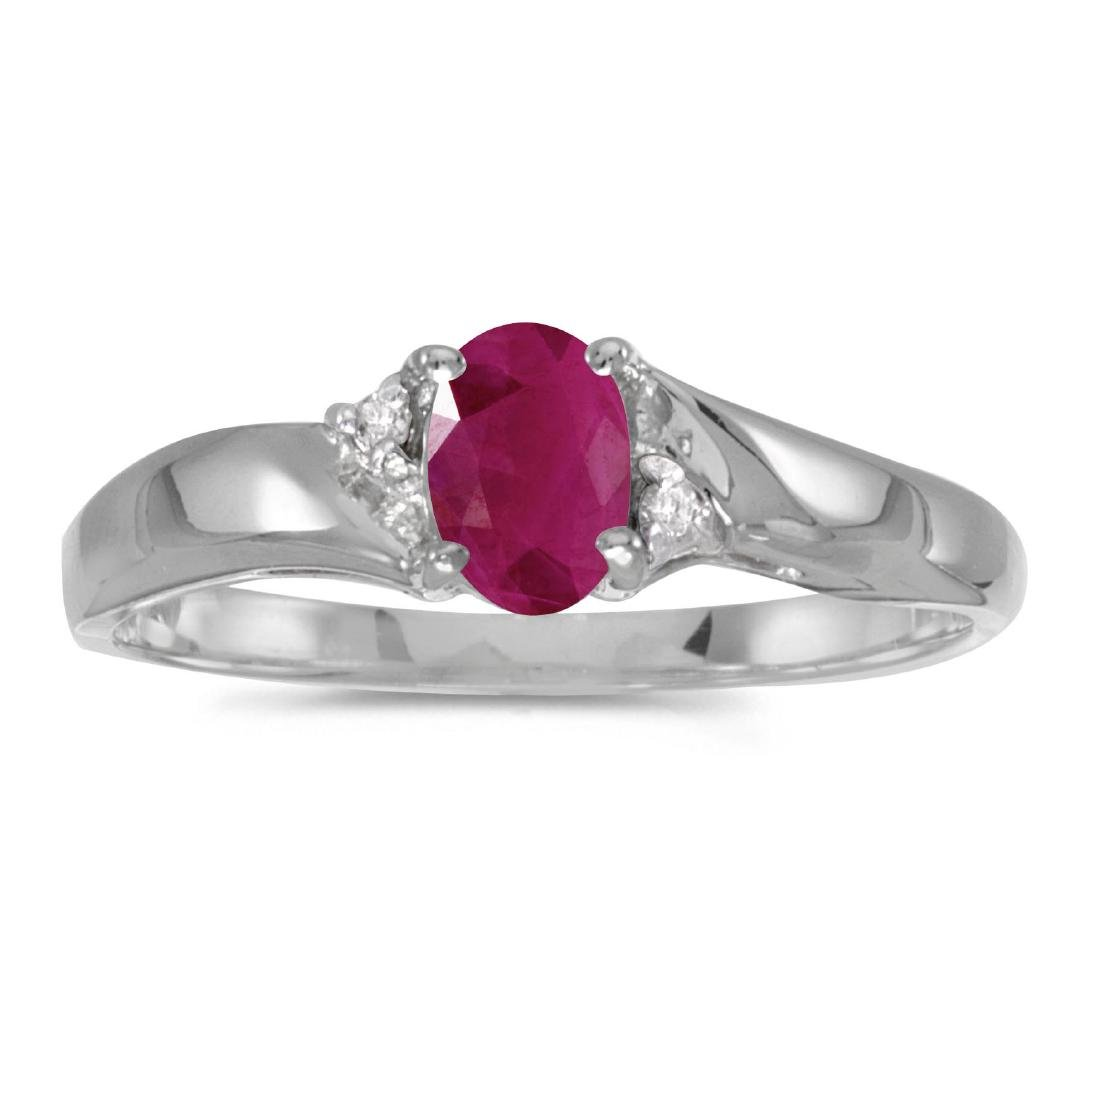 Certified 14k White Gold Oval Ruby And Diamond Ring 0.3